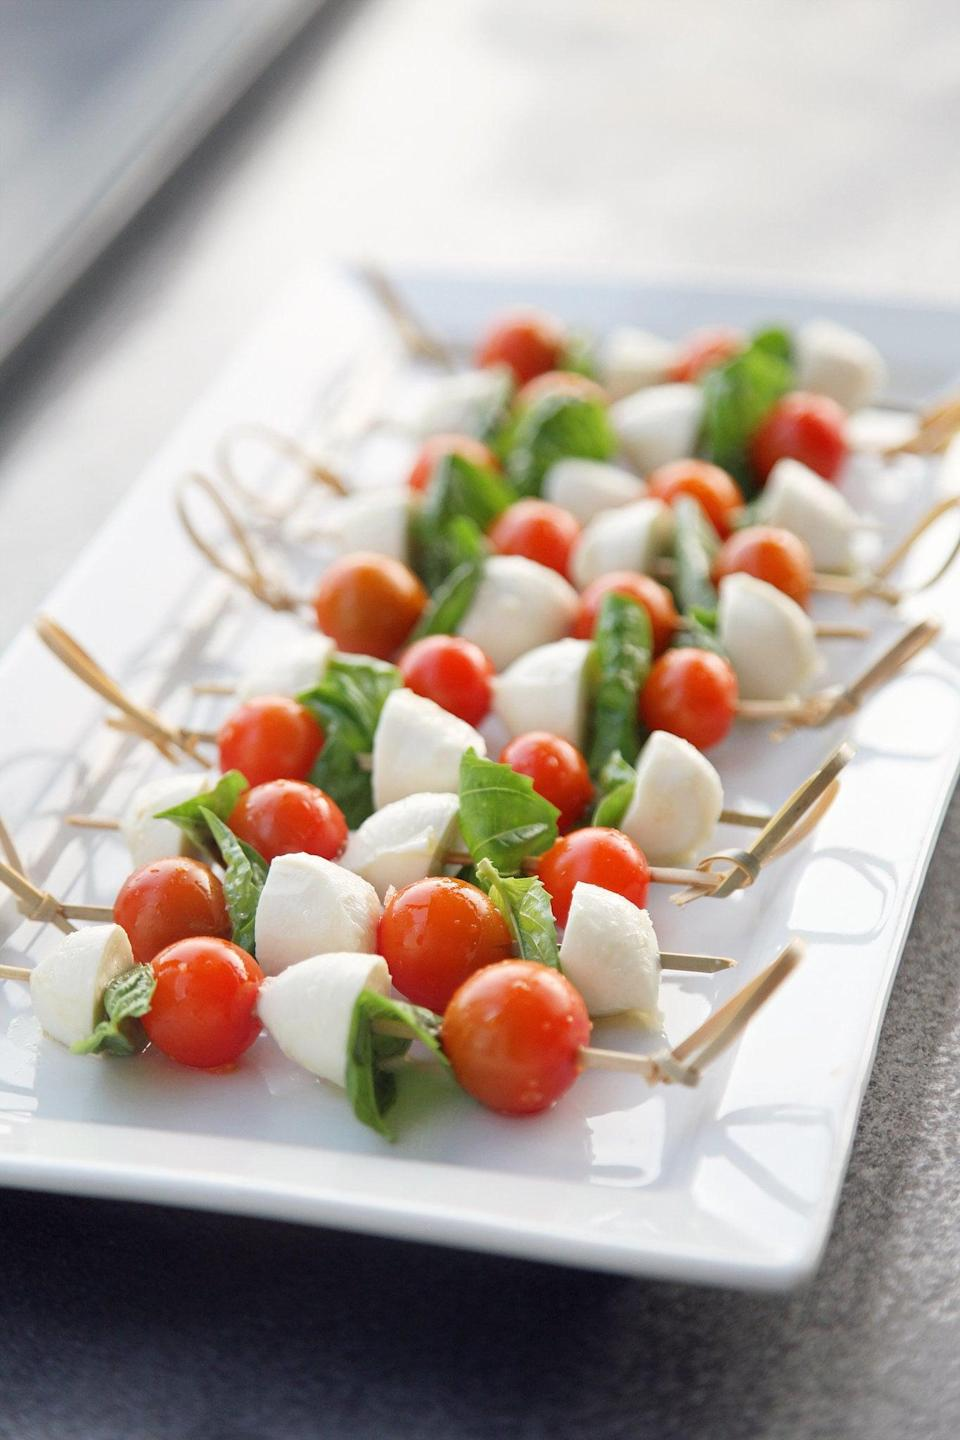 """<p>How could you say no to easy-to-prepare finger fare? These caprese skewers are made with tomato, mozzarella, and basil, and their simplicity is genius. They're superlight, so if you're looking to feed two people, it's best to make about five to six skewers so you can both indulge. </p> <p><strong>Get the recipe:</strong> <a href=""""https://www.popsugar.com/food/Caprese-Skewers-Recipe-140427"""" class=""""link rapid-noclick-resp"""" rel=""""nofollow noopener"""" target=""""_blank"""" data-ylk=""""slk:caprese skewers"""">caprese skewers</a></p>"""